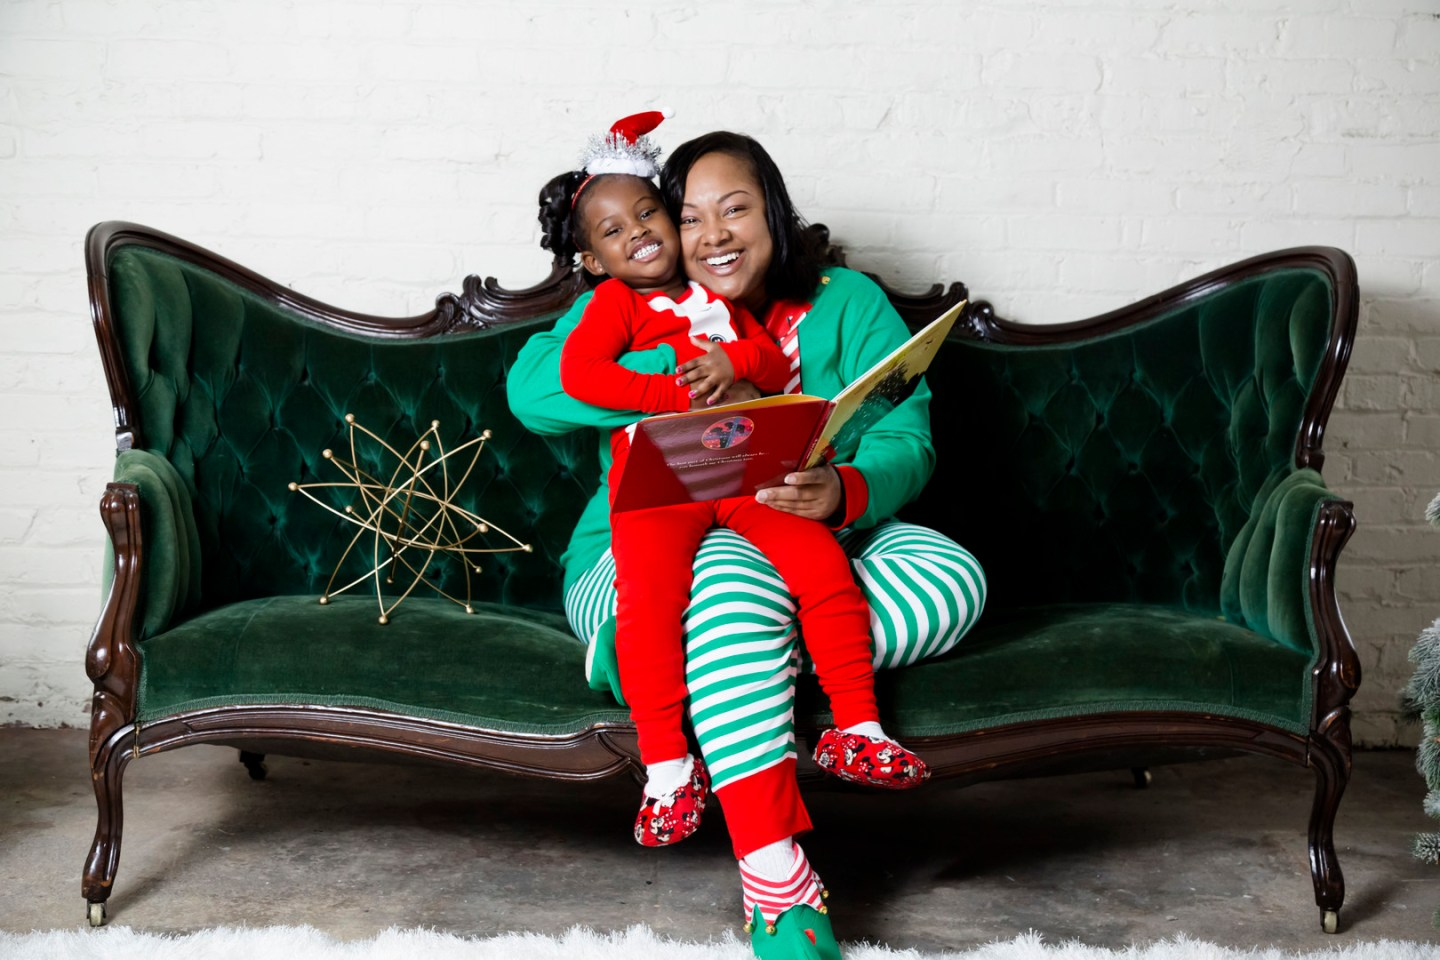 etncteprinusacefvp42_big Mommy & Me Christmas PJ Session in Greensboro, NC